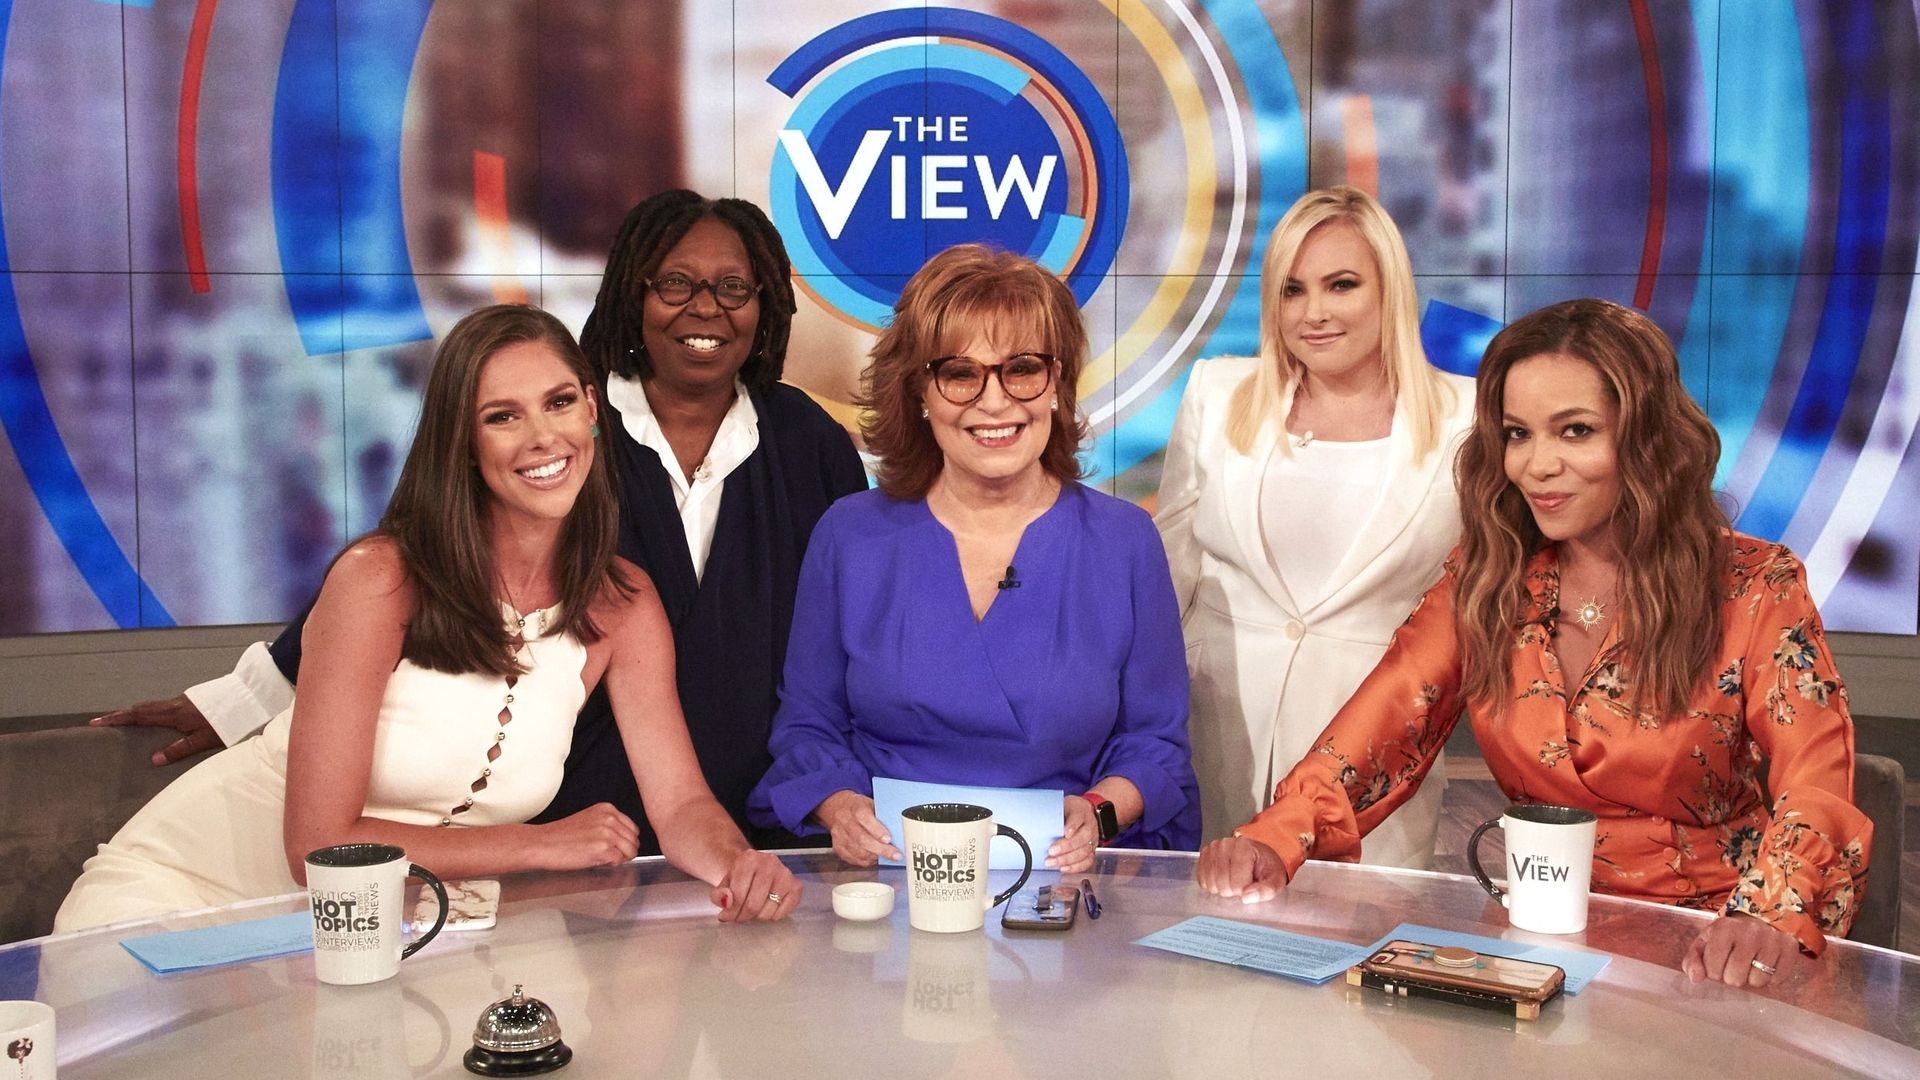 The View Season 20: Where To Watch Every Episode | Reelgood